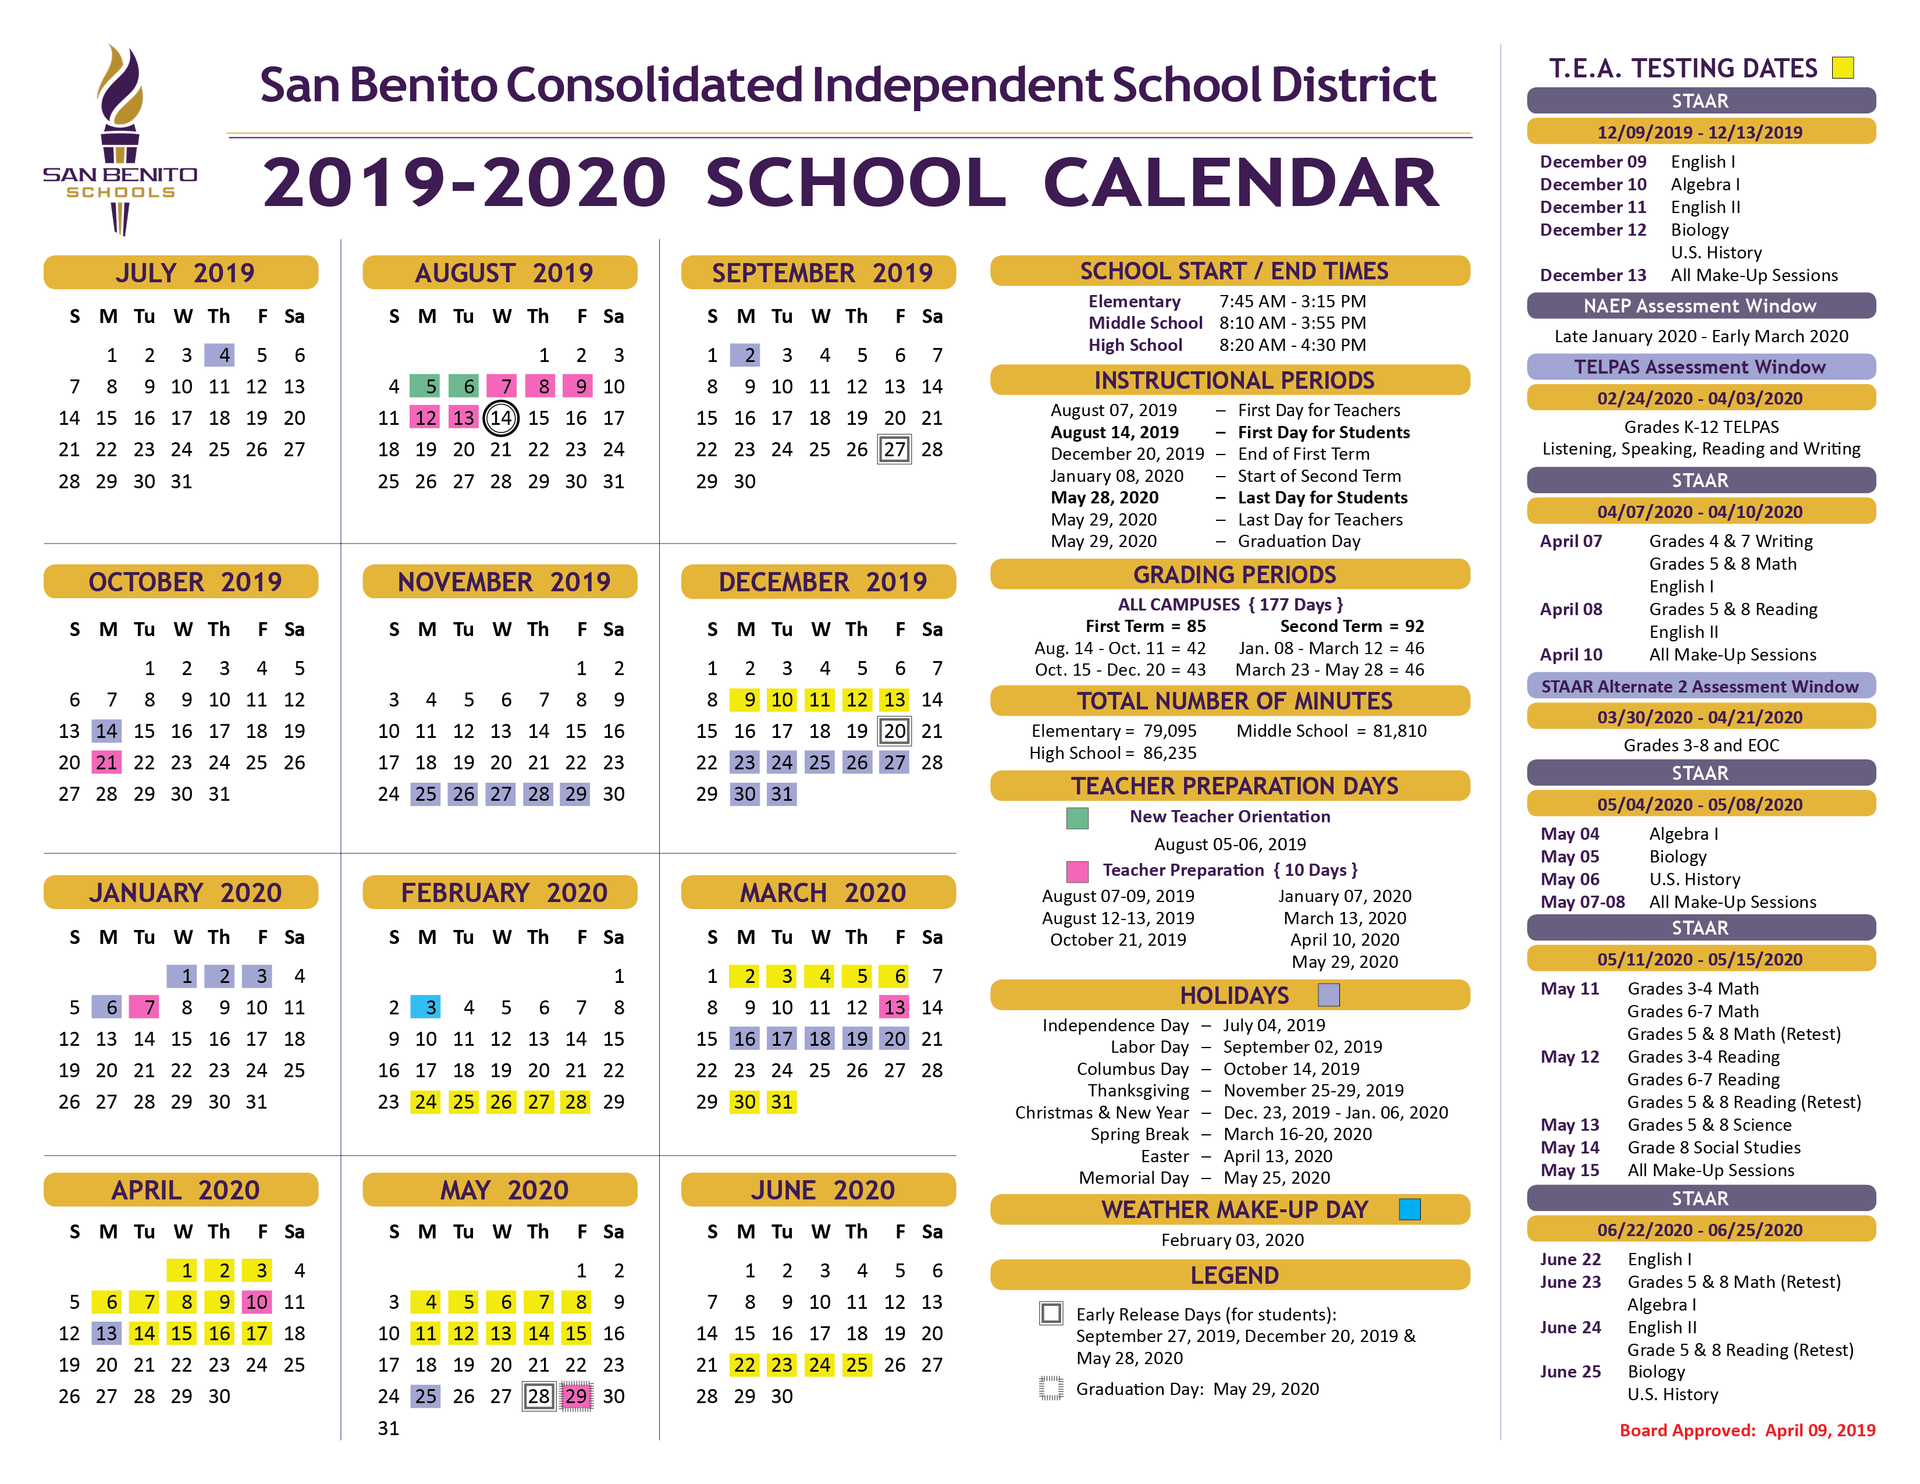 Hisd Calendar 2020 2016 School Calendar – District – San Benito Consolidated Independent